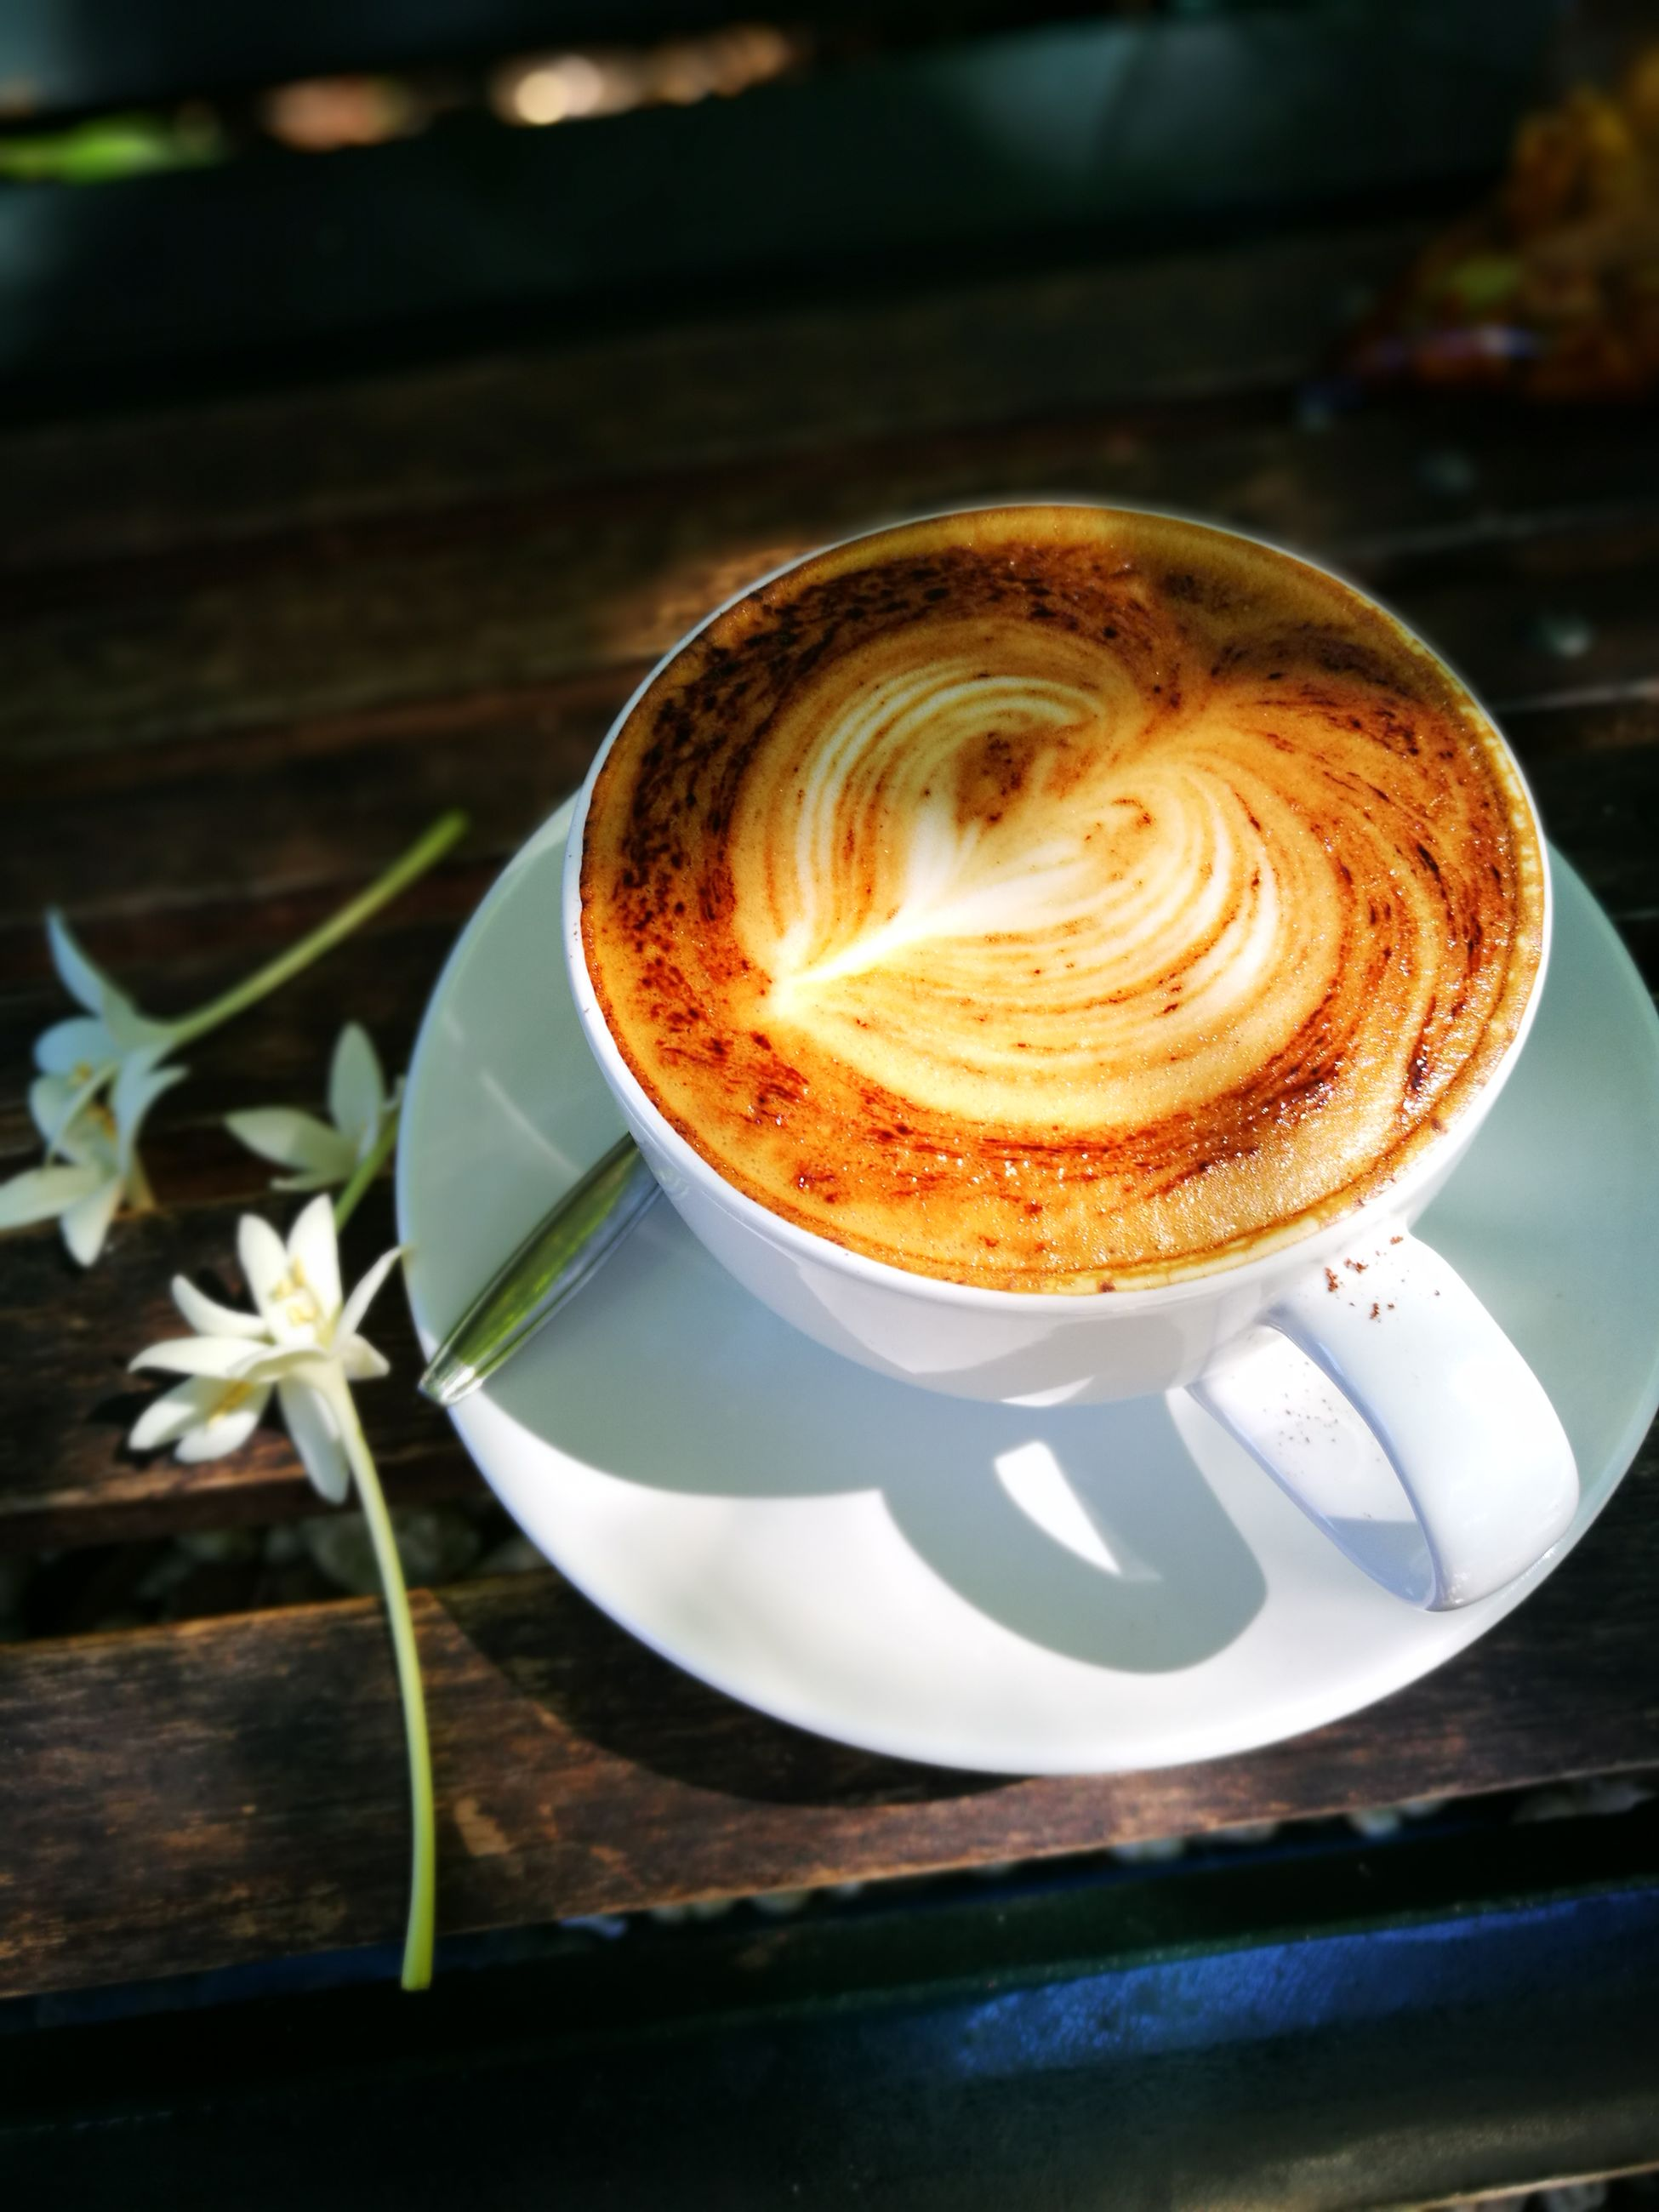 coffee - drink, coffee cup, drink, cappuccino, saucer, frothy drink, spoon, latte, cup, close-up, froth art, brown, food and drink, no people, espresso, refreshment, table, coffee break, indoors, mocha, freshness